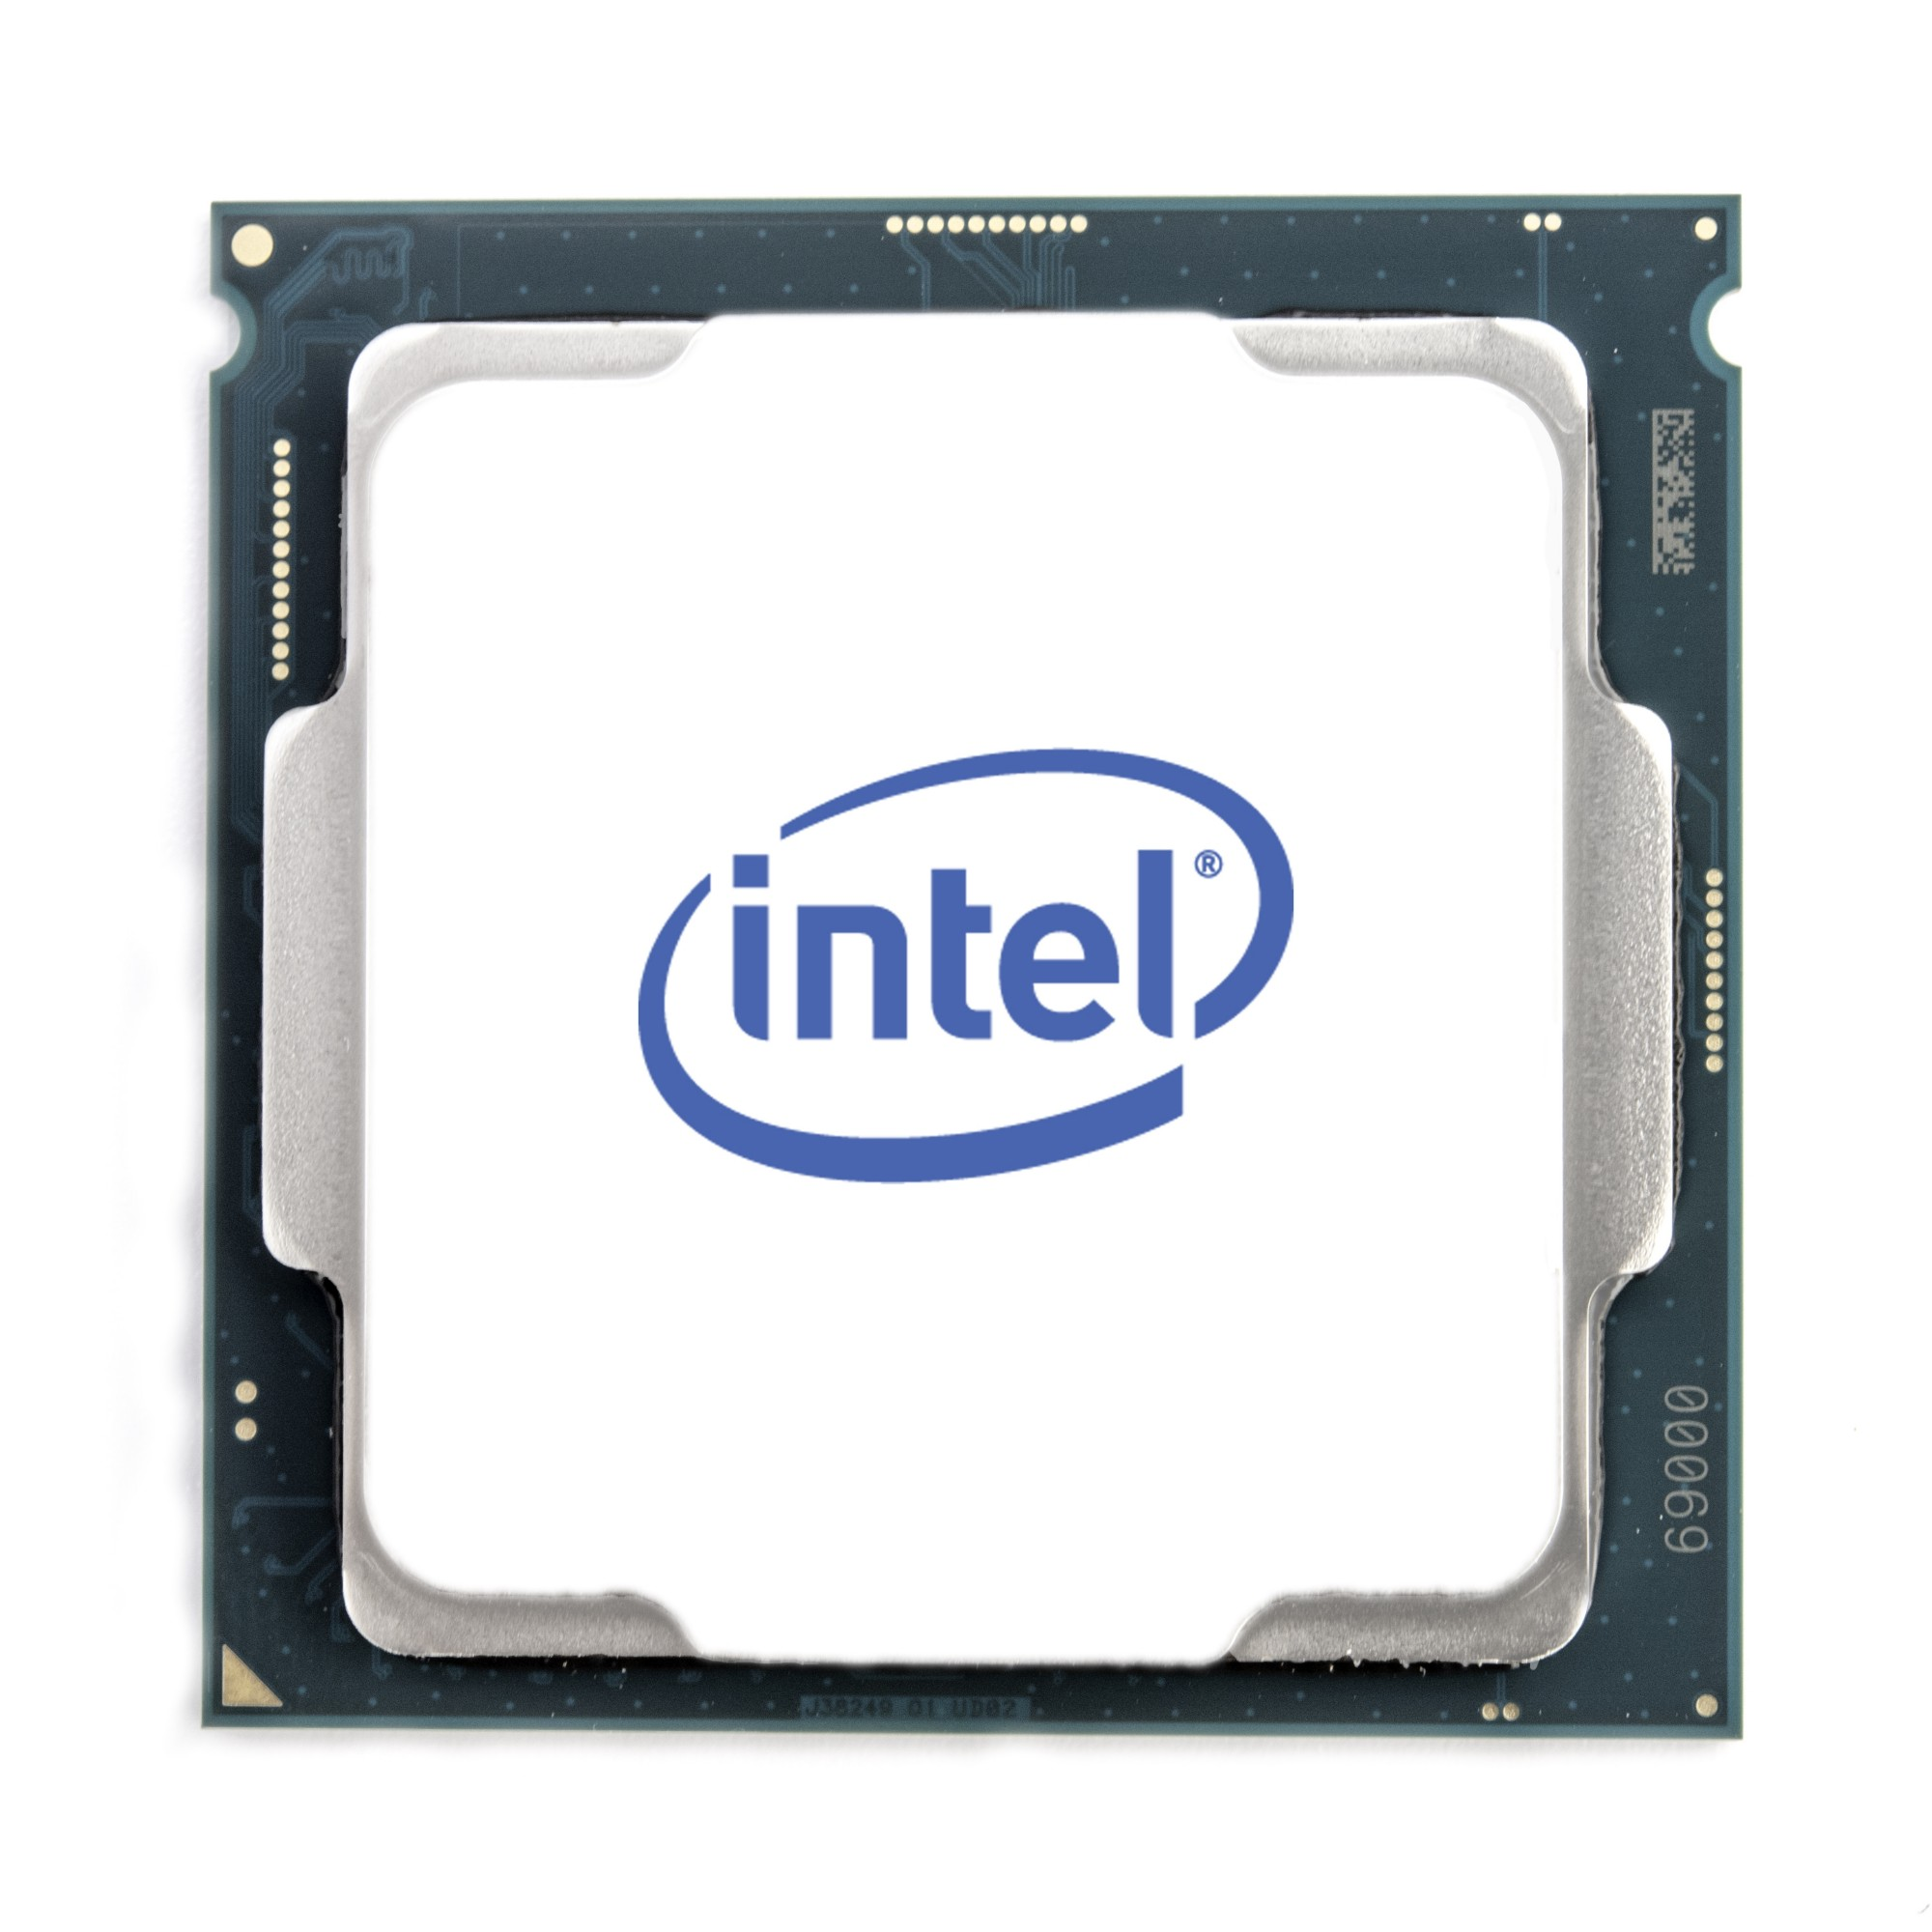 INTEL XEON 6230 PROCESSOR 2.1 GHZ 28 MB